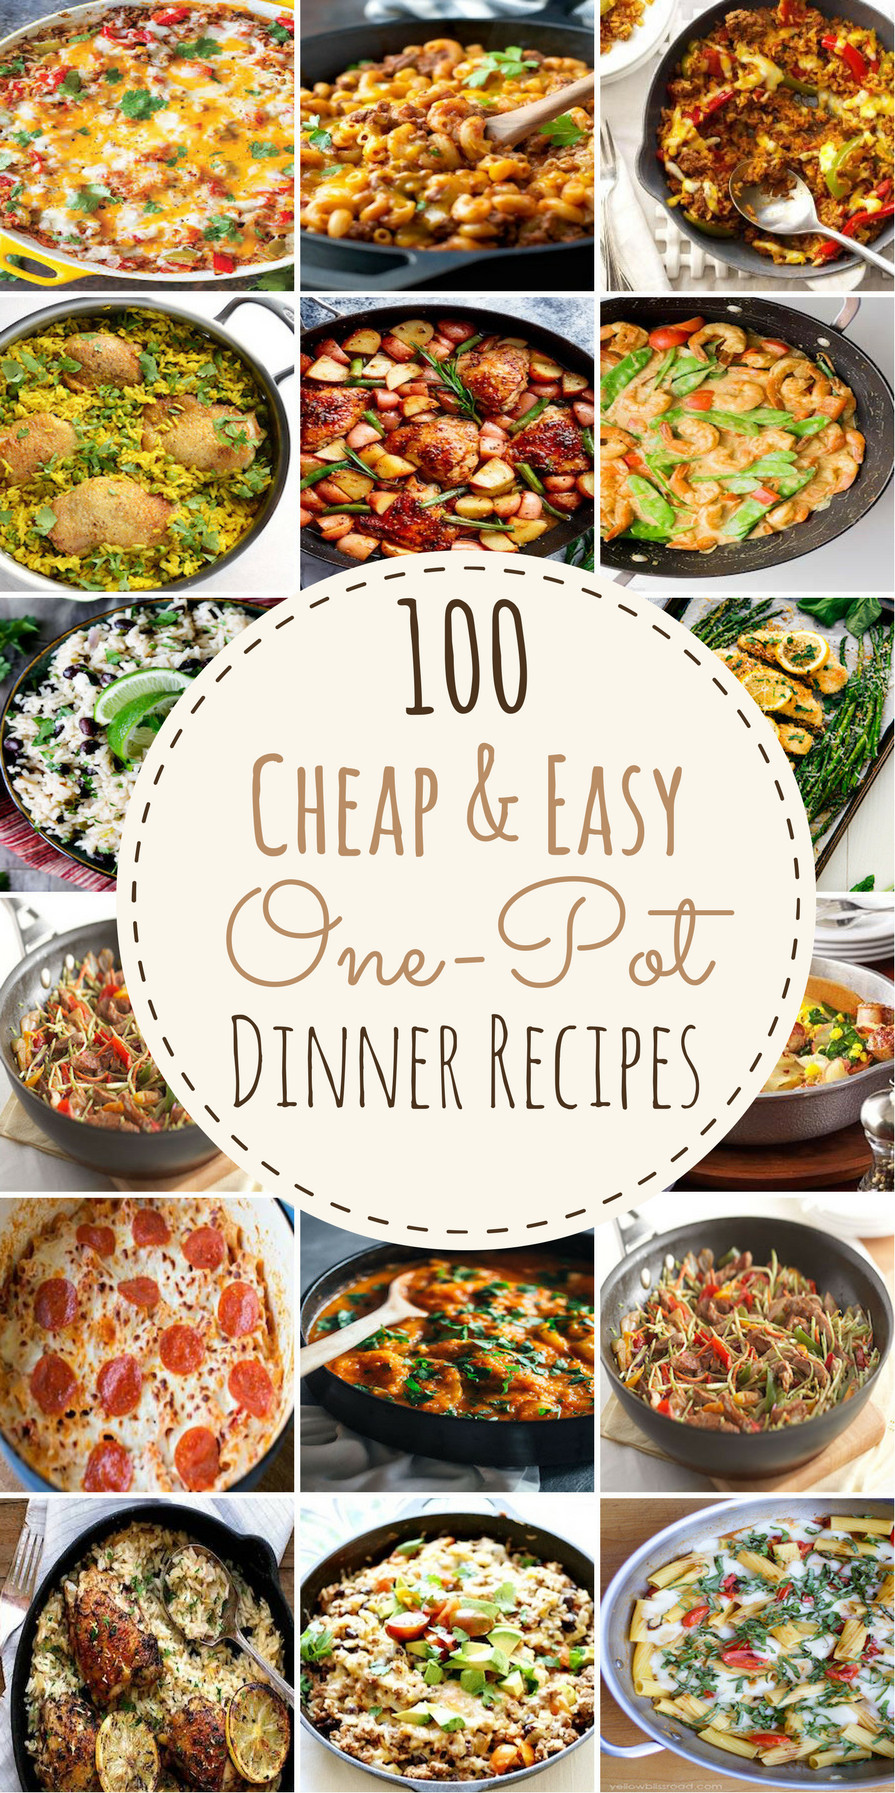 Easy Cheap Dinner  100 Cheap & Easy e Pot Dinner Recipes